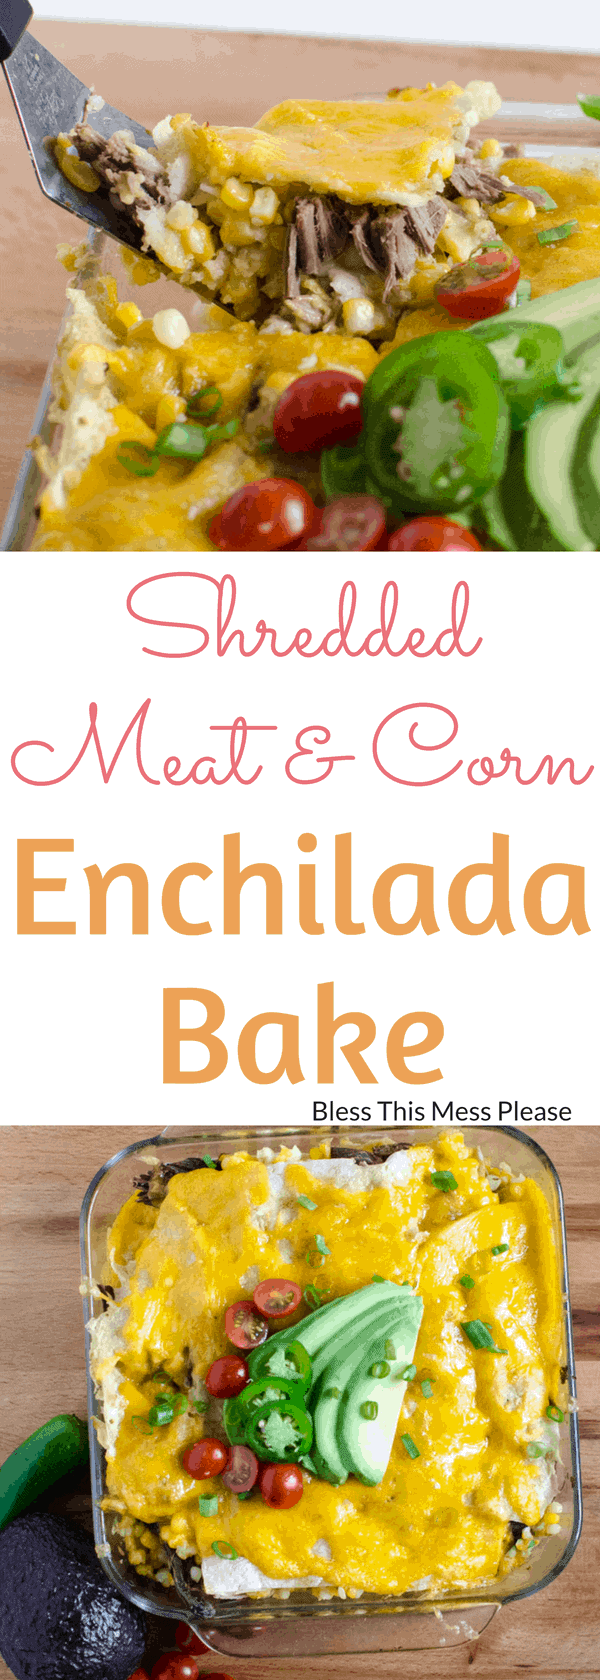 Shredded Meat and Corn Enchilada Bake